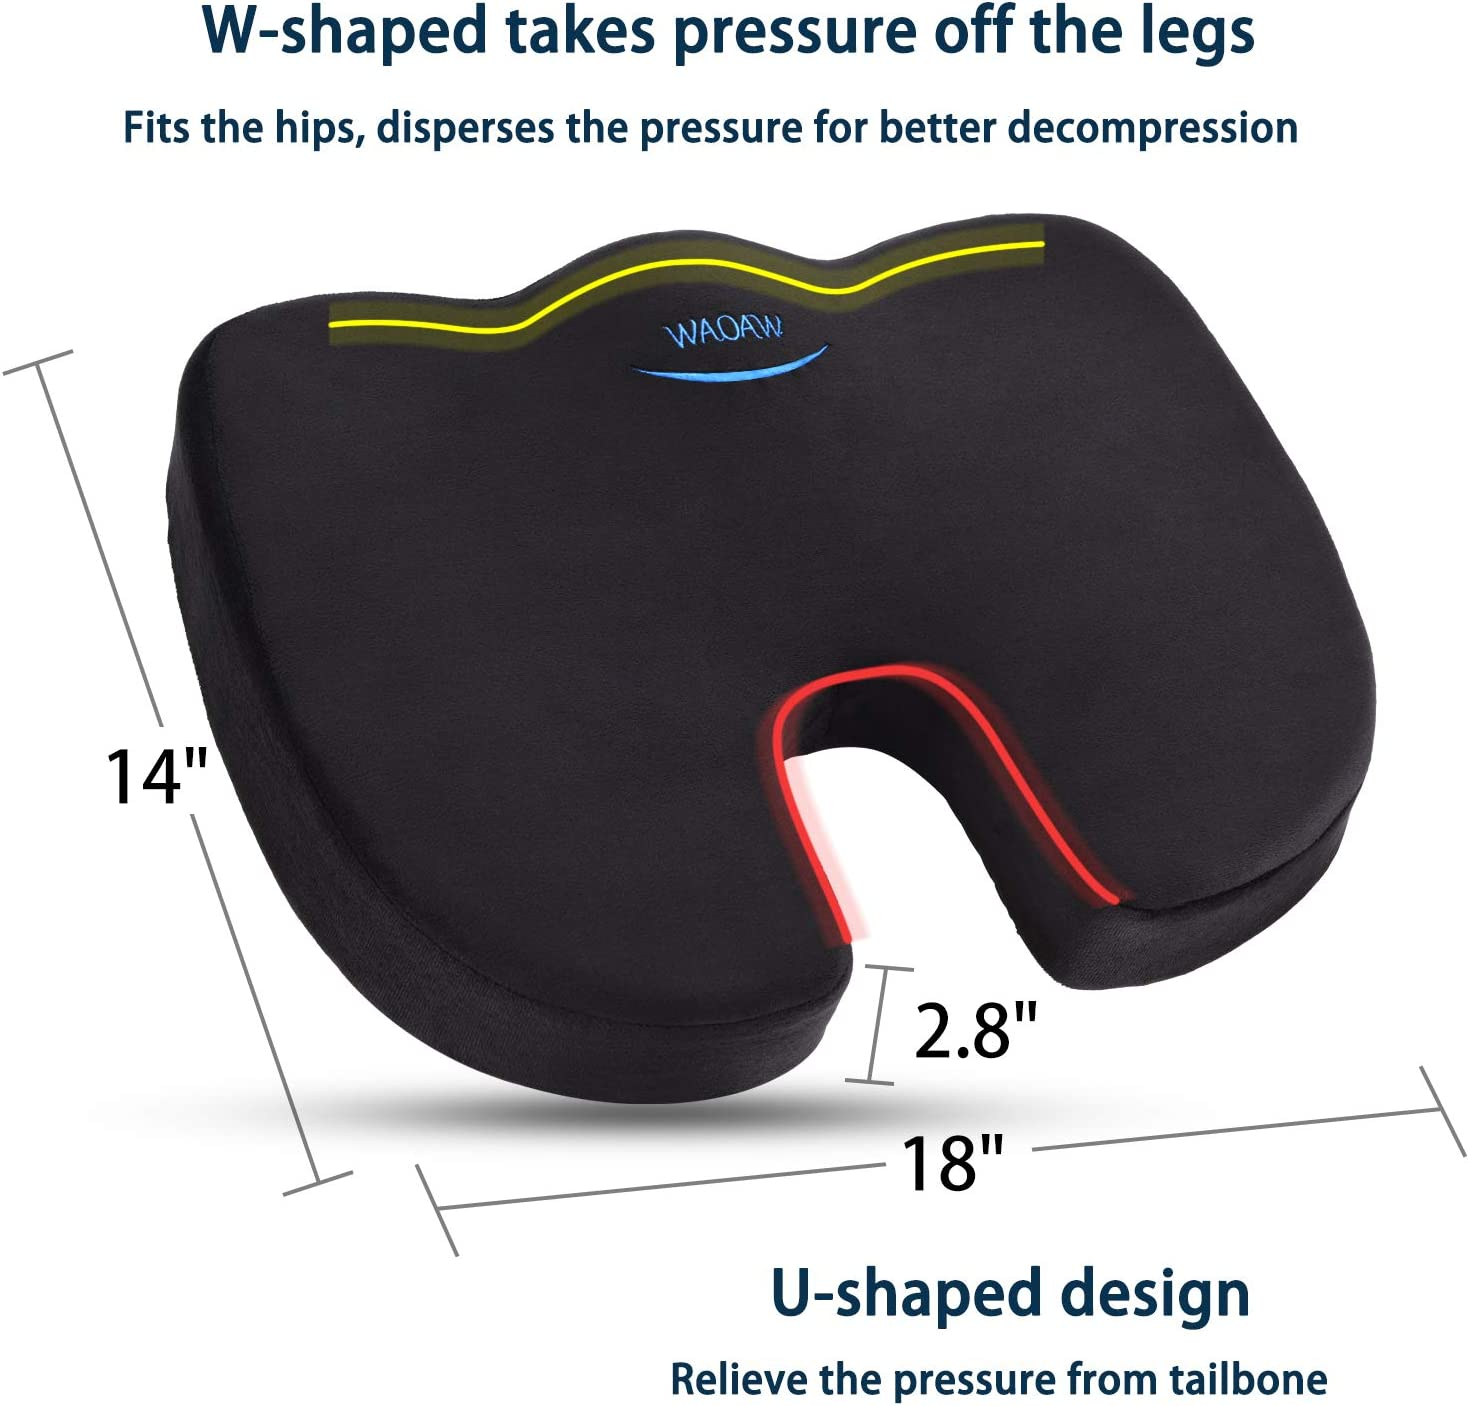 71Fr0Vt2jKL. AC SL1500 - What Is The Best Car Seat Cushion For Leg Pain? - ChairPicks